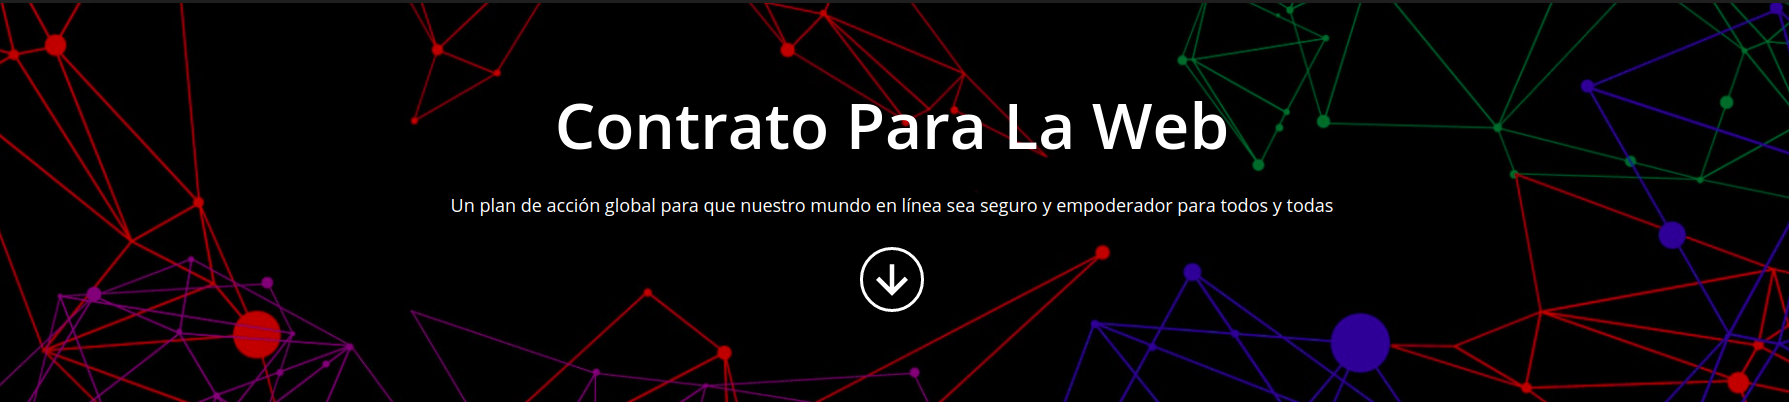 Contrato para la Web - projecto de Tim Berners-Lee